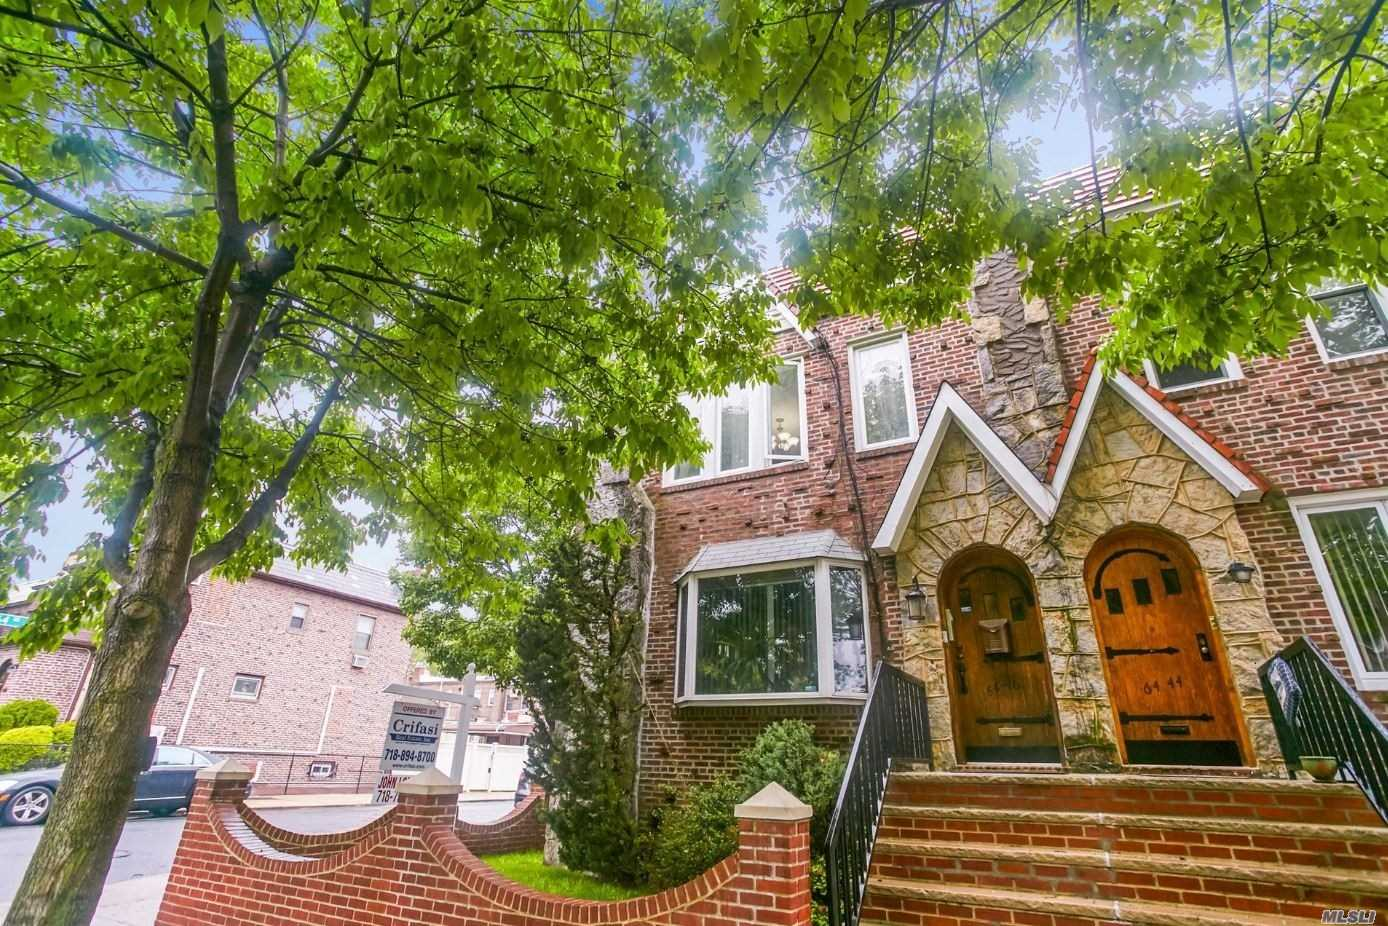 Beautiful Semi-Detatched 2 Family Brick With Finished Basement And 2 Car Garage .This Large Brick Is Only Blocks Away From Shopping And Transportation And Is In The Highly Regarded P.S 49 School